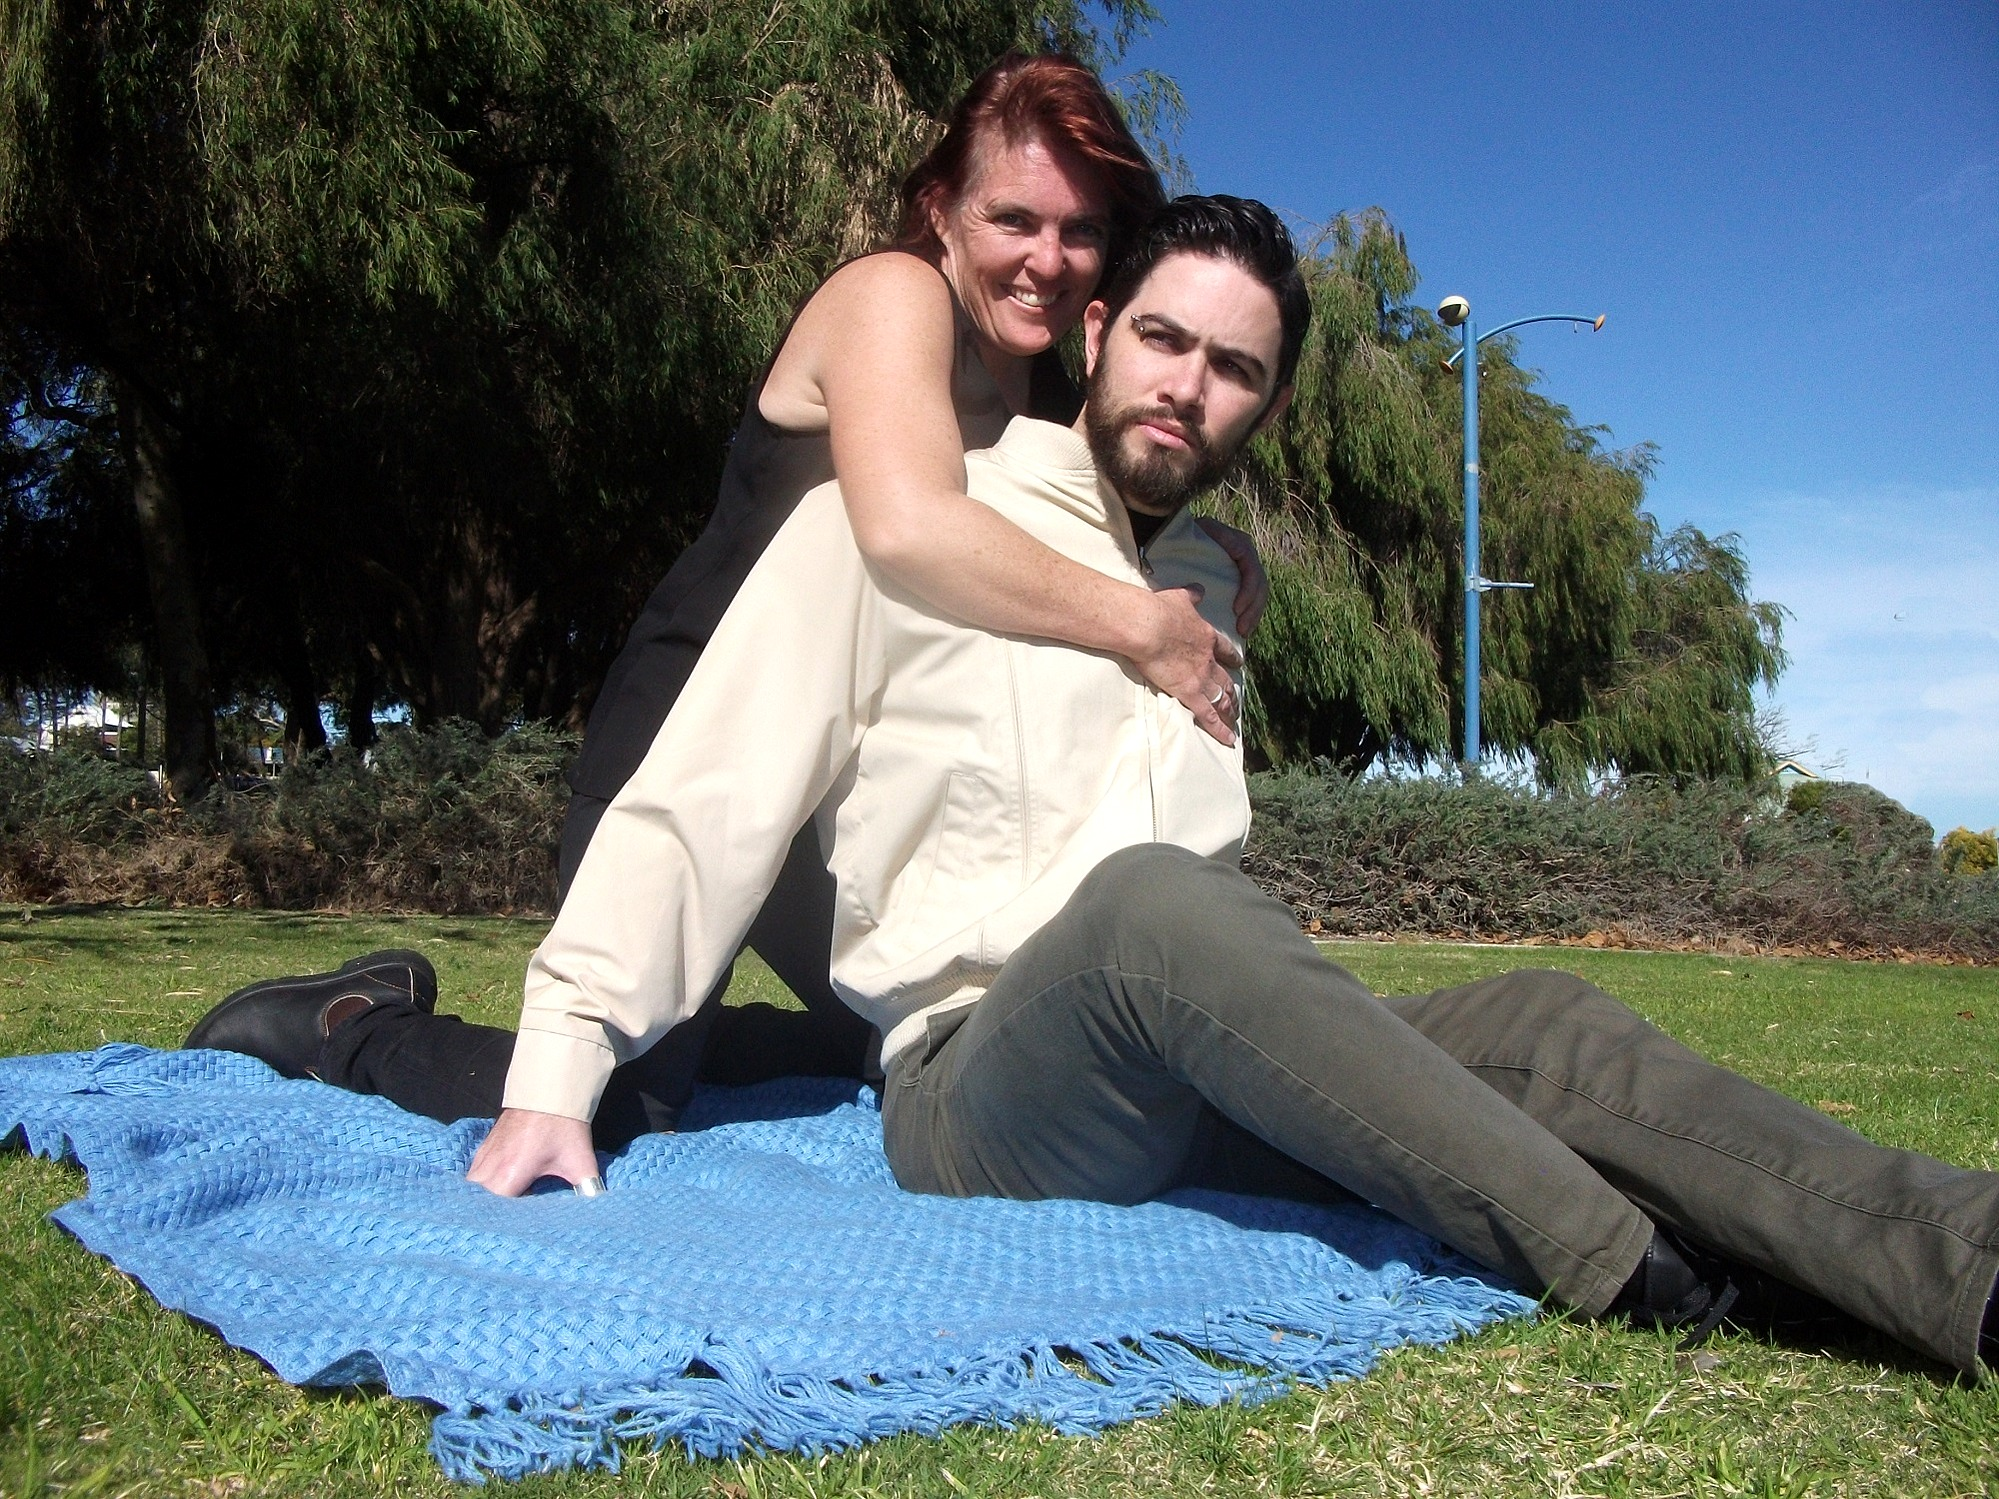 Under The Blue Sky  features Petrina Harley as Michelle and Zac Bennett-McPhee as Graham.